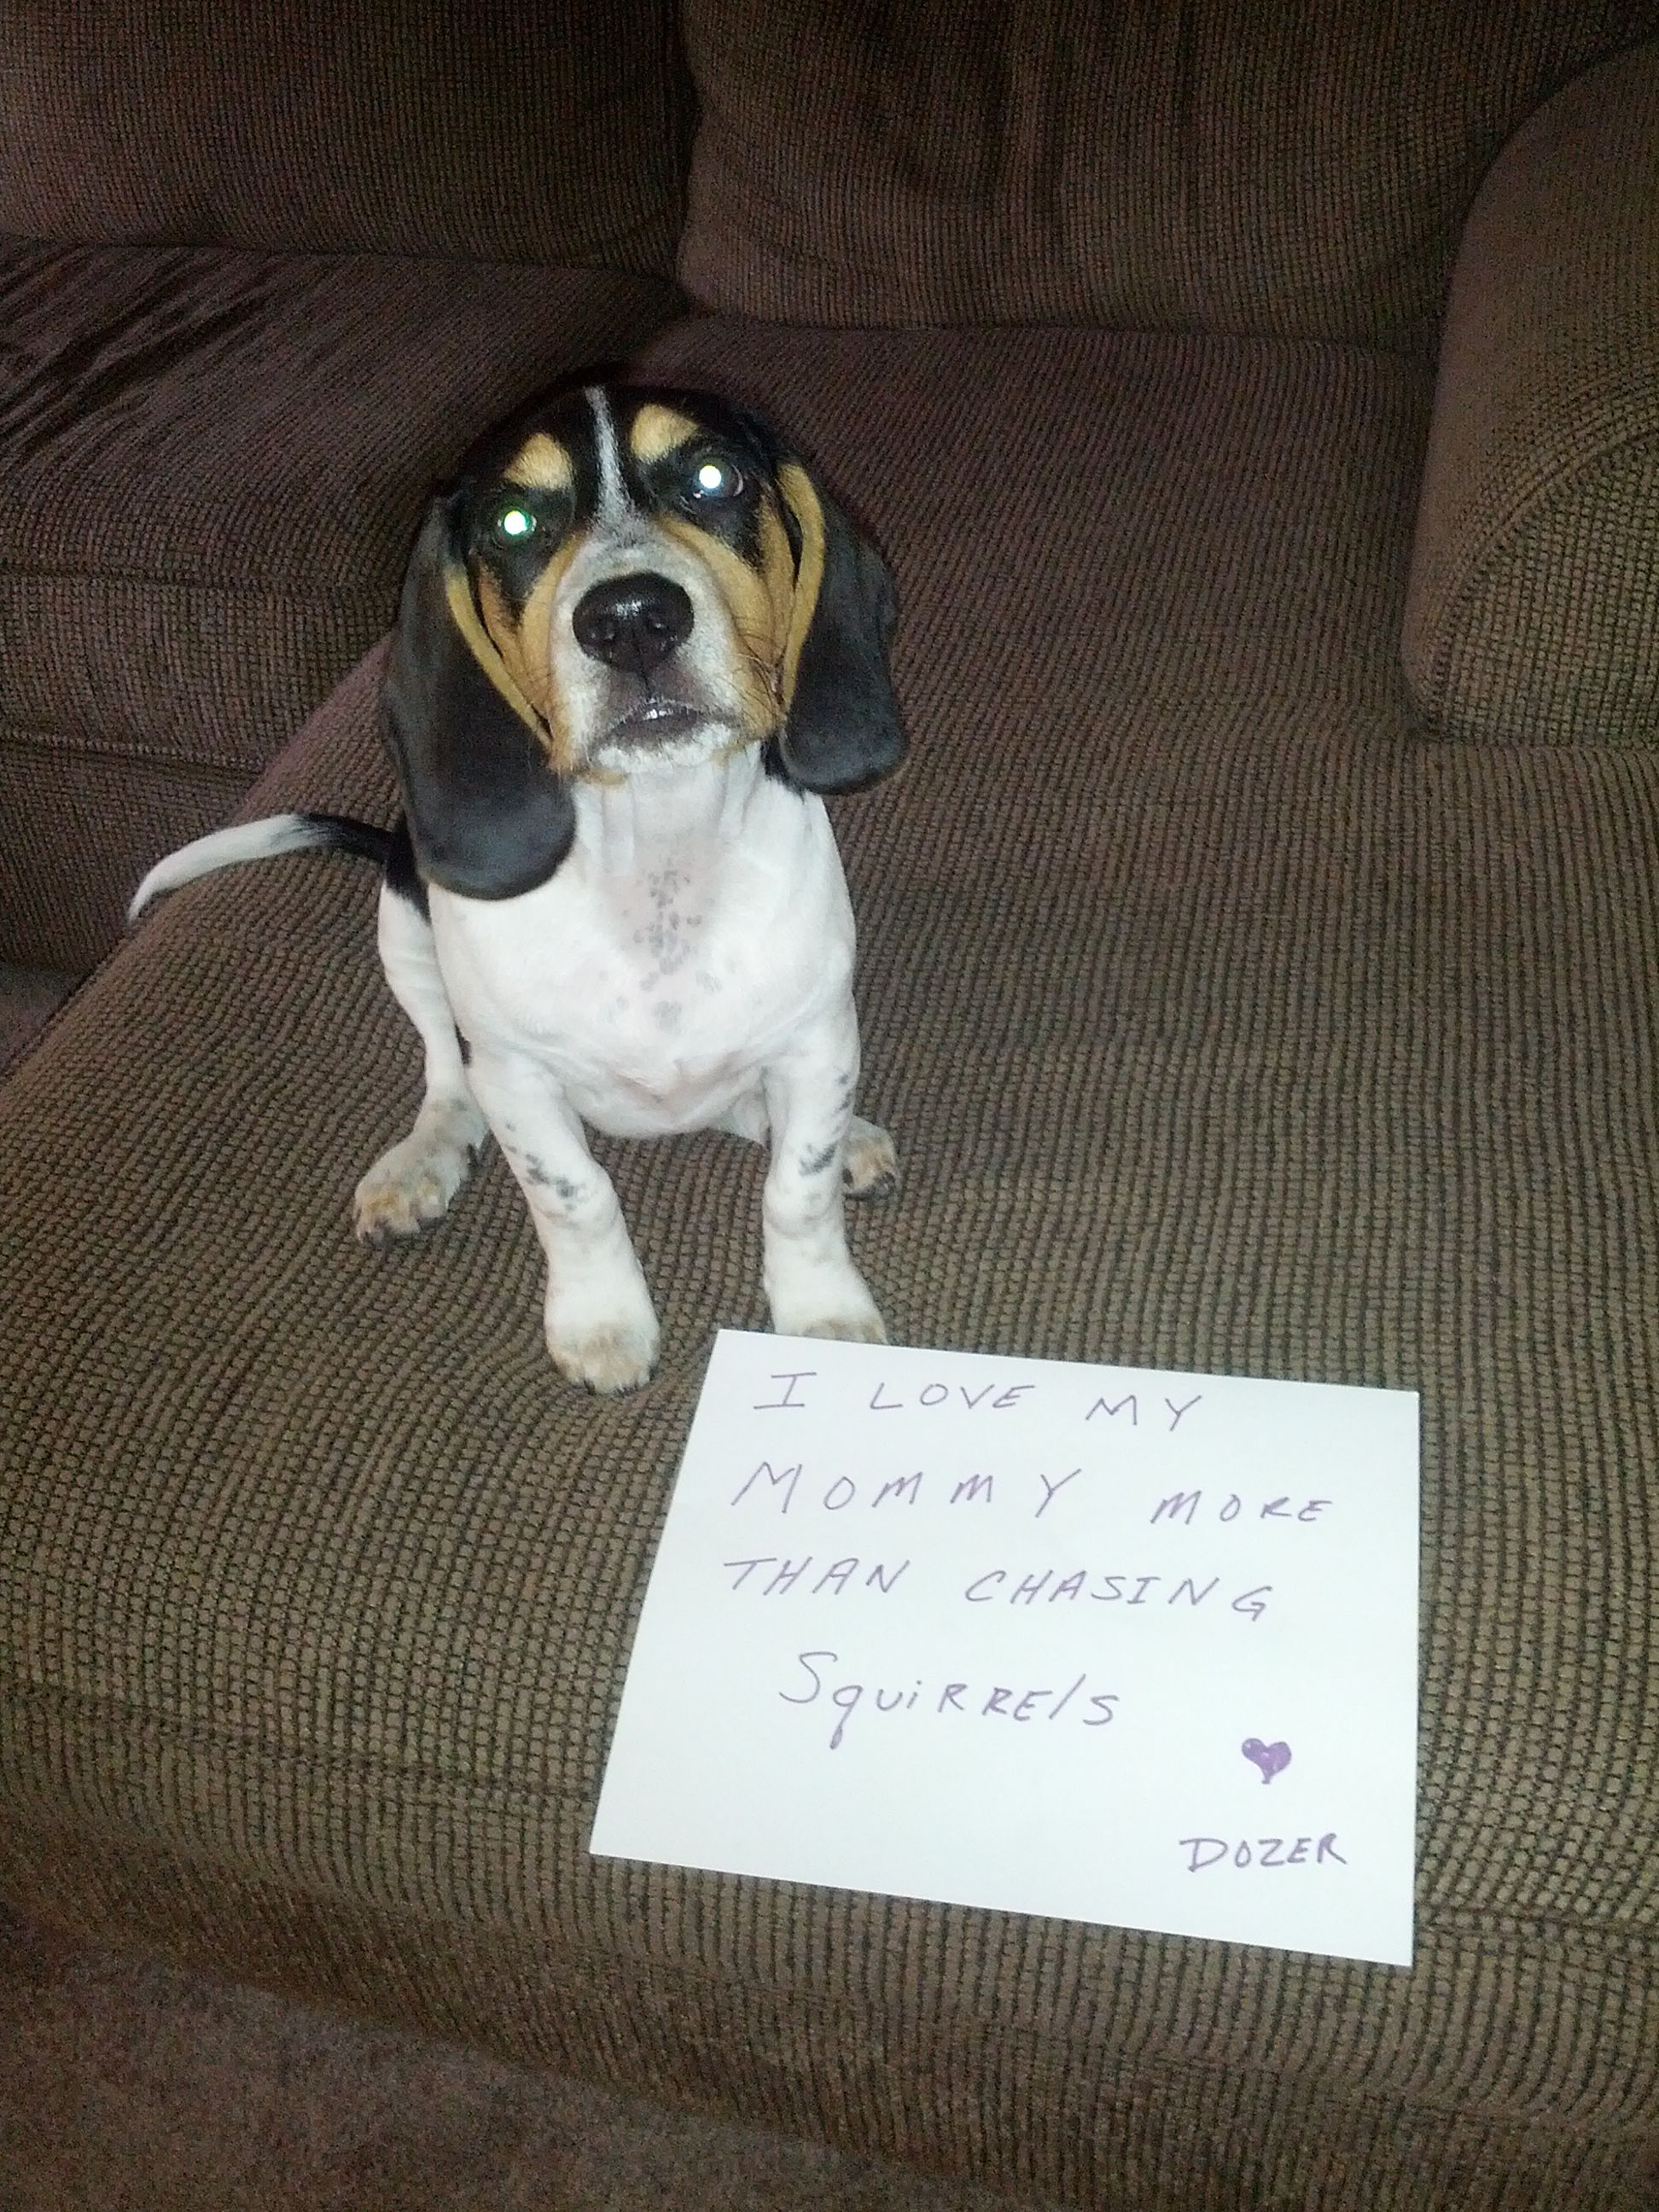 Dozer 39 s lunchtime e mail to mommy beagles pinterest - Chiot beagle gratuit ...